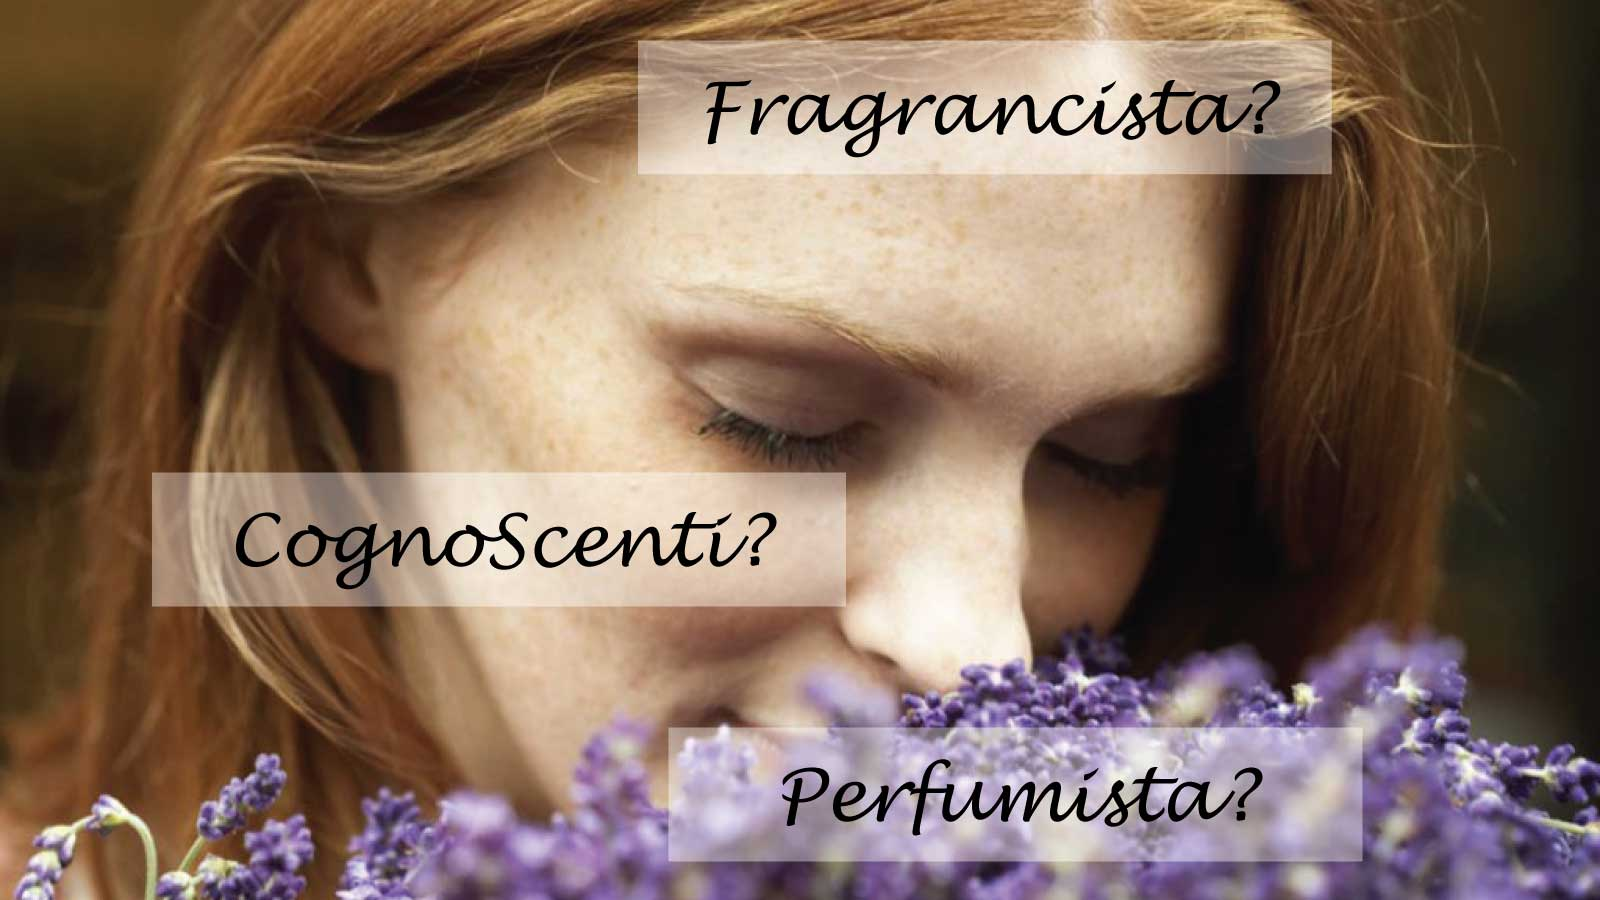 CognoScenti Fragrancista Perfumista Perfume Passion